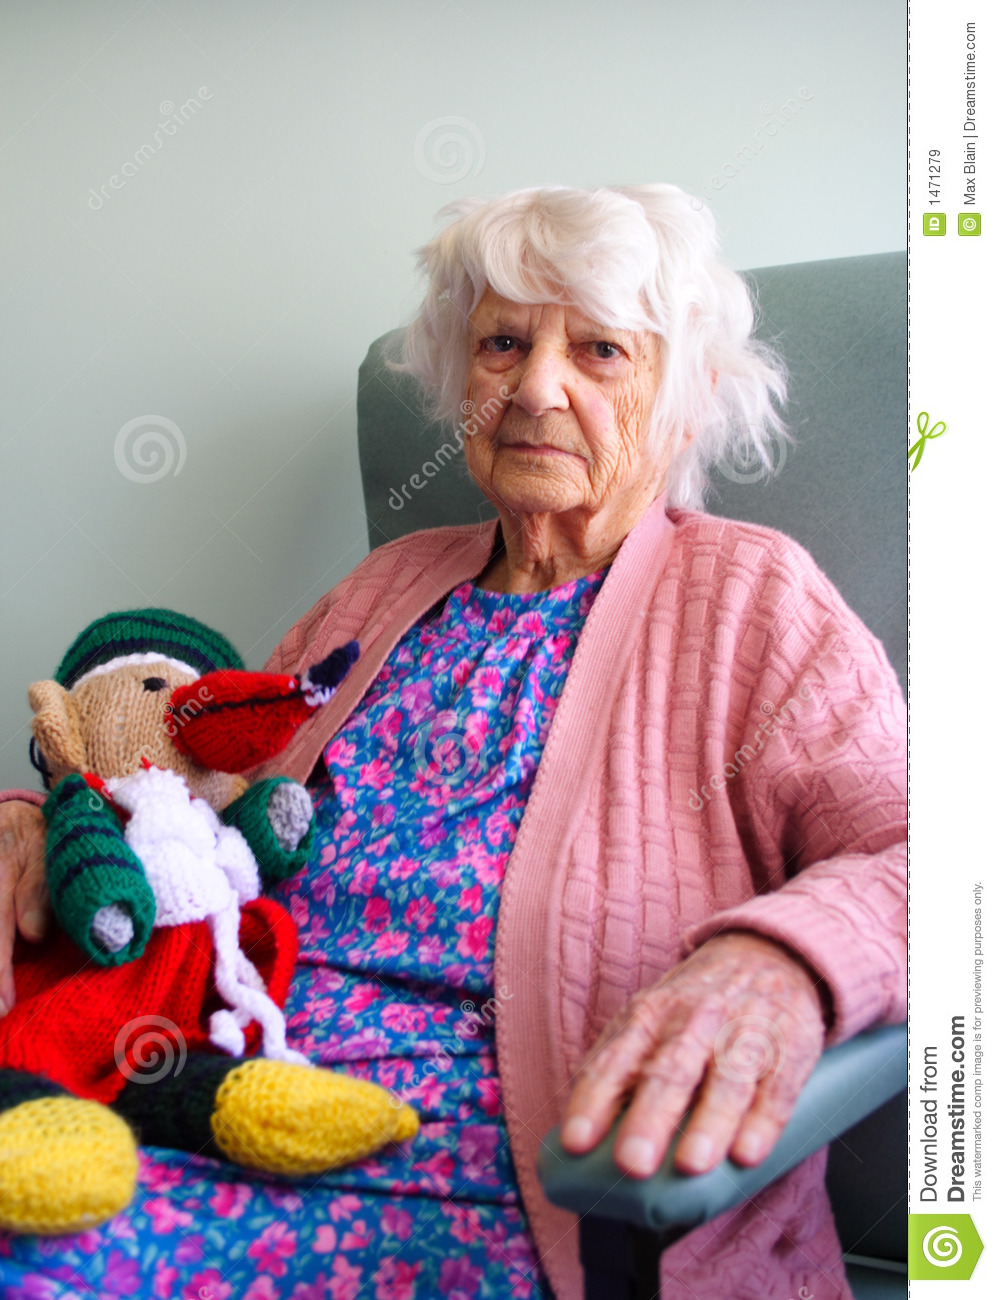 Toys For Elderly : Senior citizen with toy royalty free stock images image